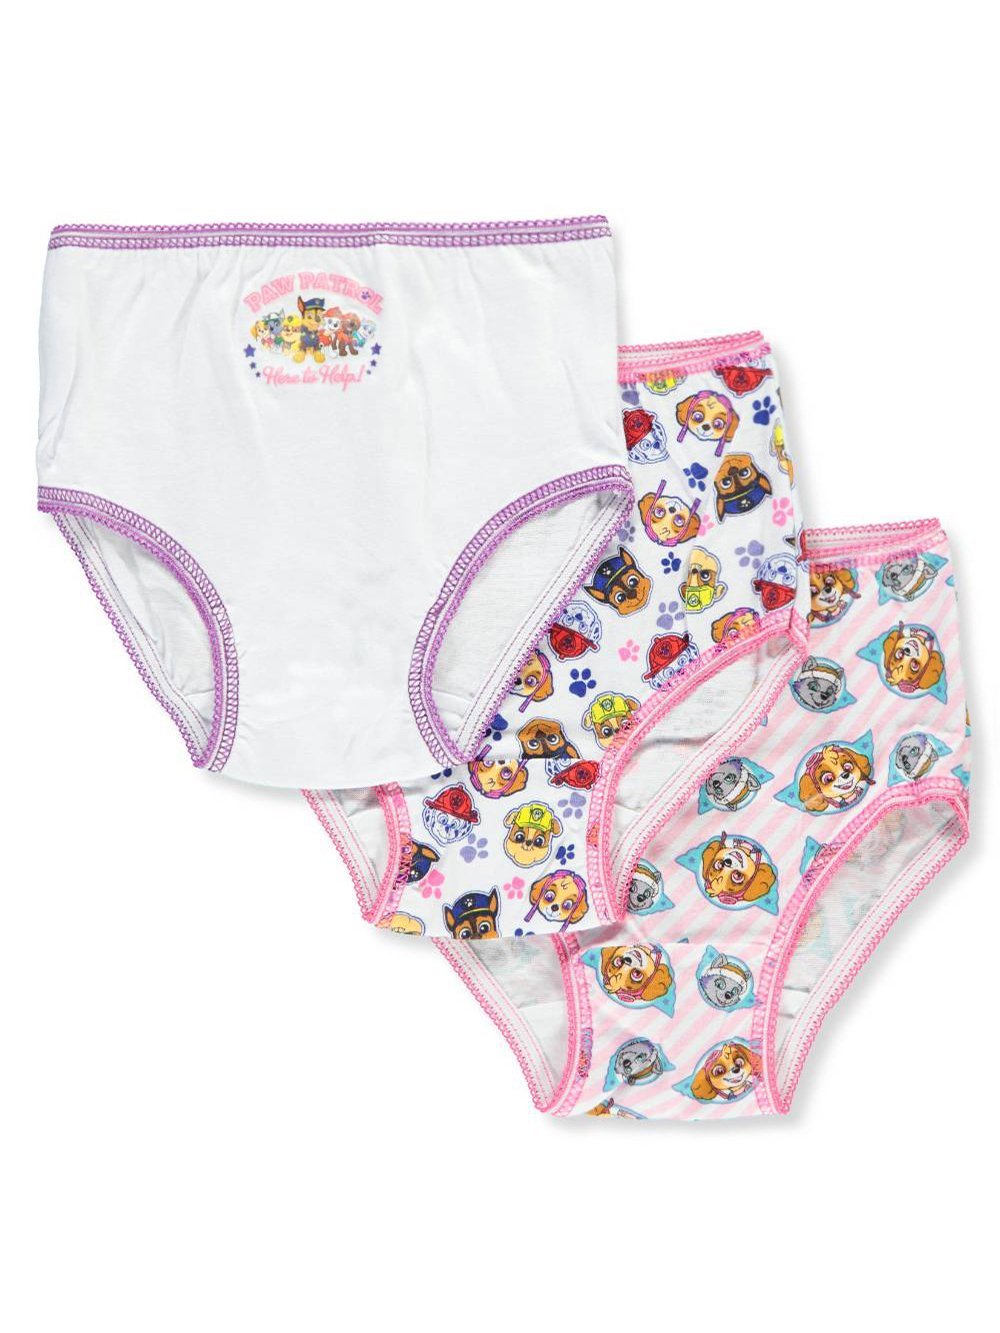 Nickelodeon Paw Patrol Toddler Girl's 3 Pack Girls Underwear Panties